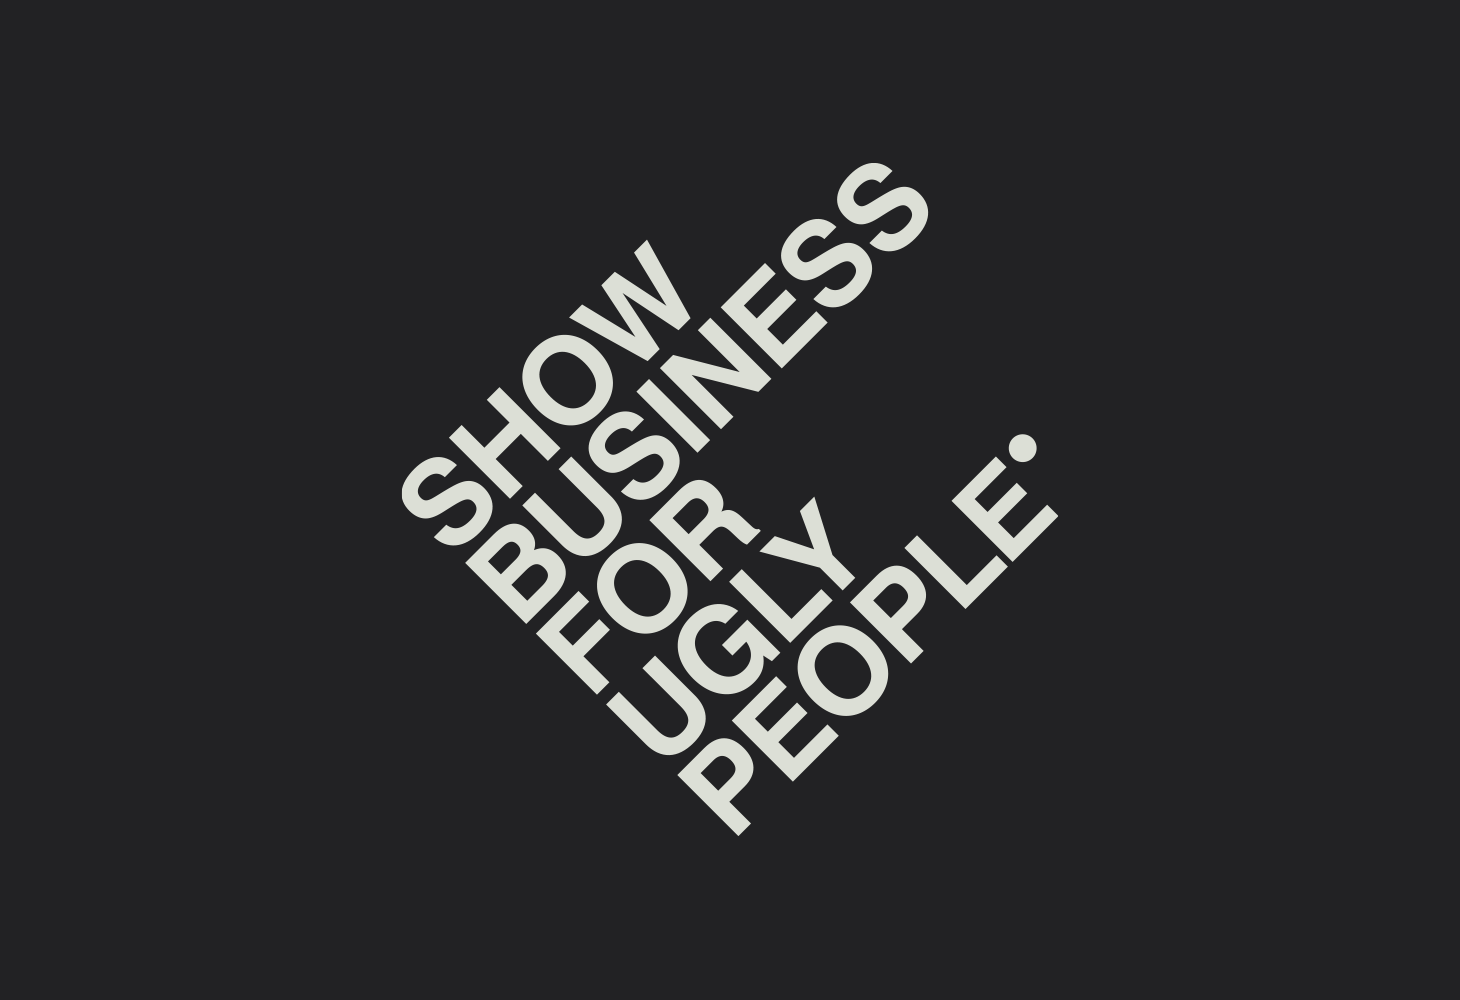 Show business for ugly people - Logotype